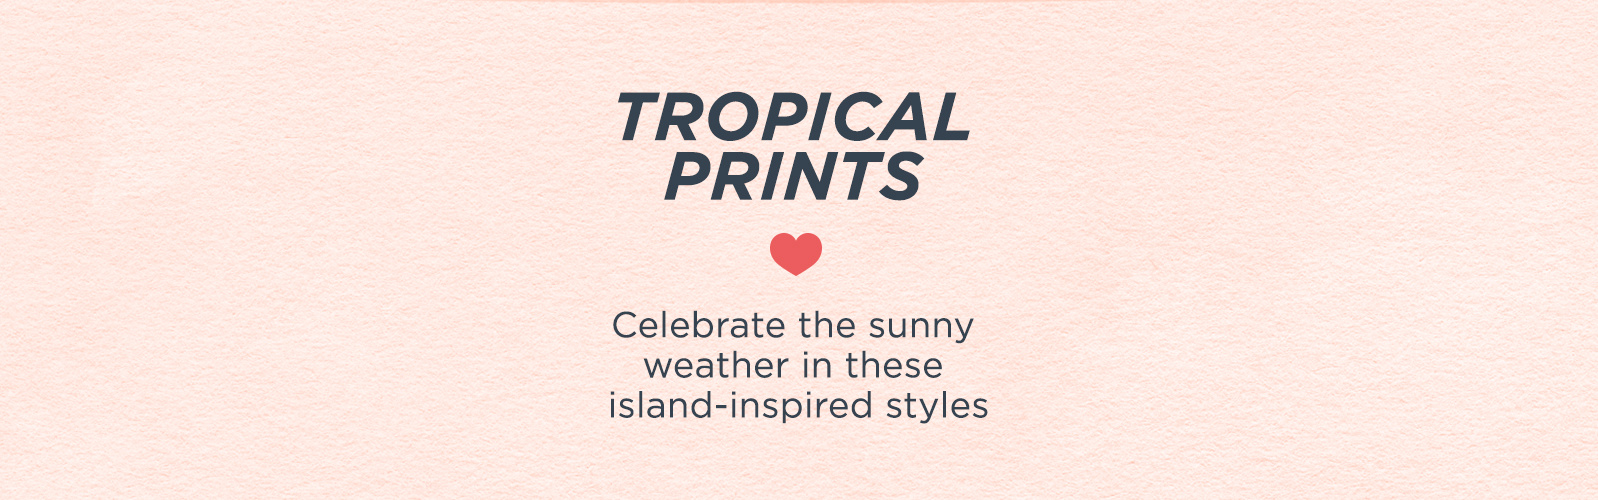 Tropical Prints  Celebrate the sunny weather in these island-inspired styles